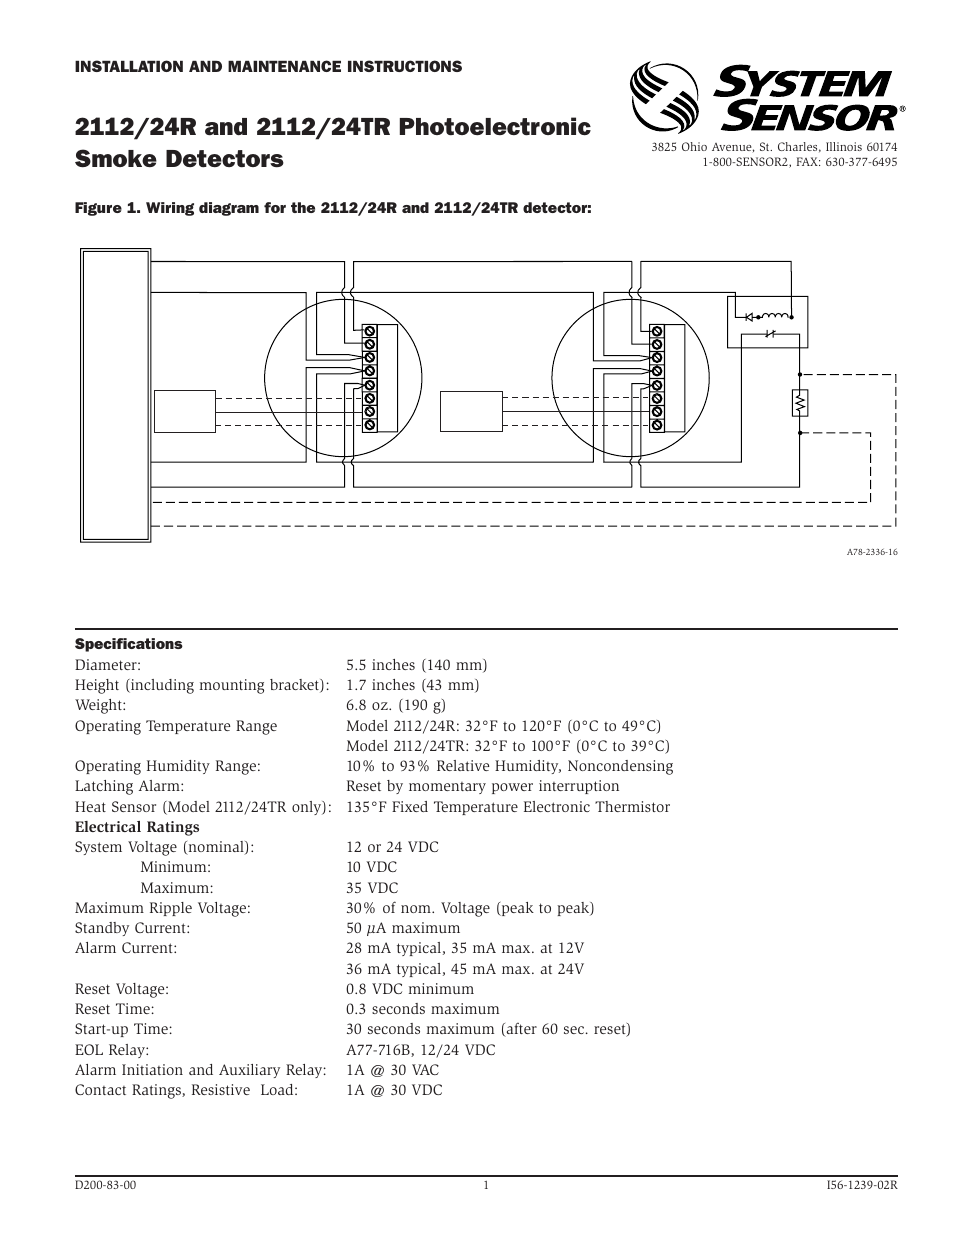 system sensor 2112_24r and 2112_24tr photoelectronic page1 system sensor 2112_24r and 2112_24tr photoelectronic user manual 5R55E Transmission Wiring Diagram at bakdesigns.co